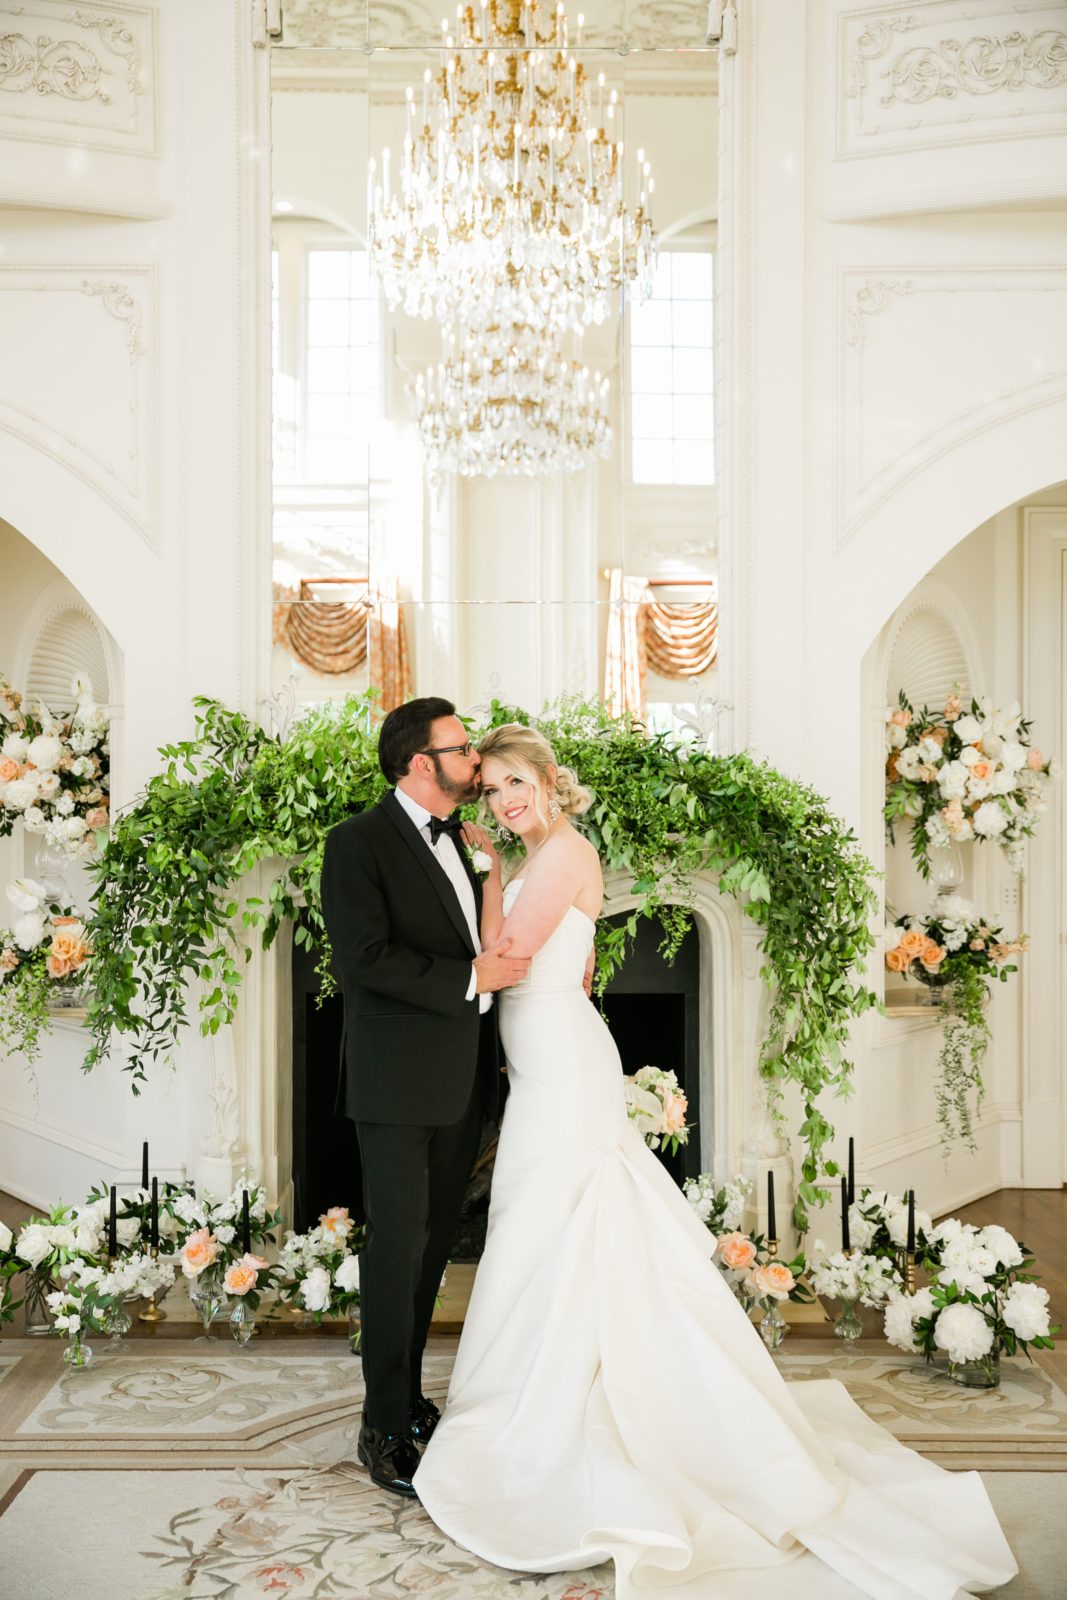 Romantic wedding photography: Sophisticated and Chic wedding inspiration on Alexa Kay Events